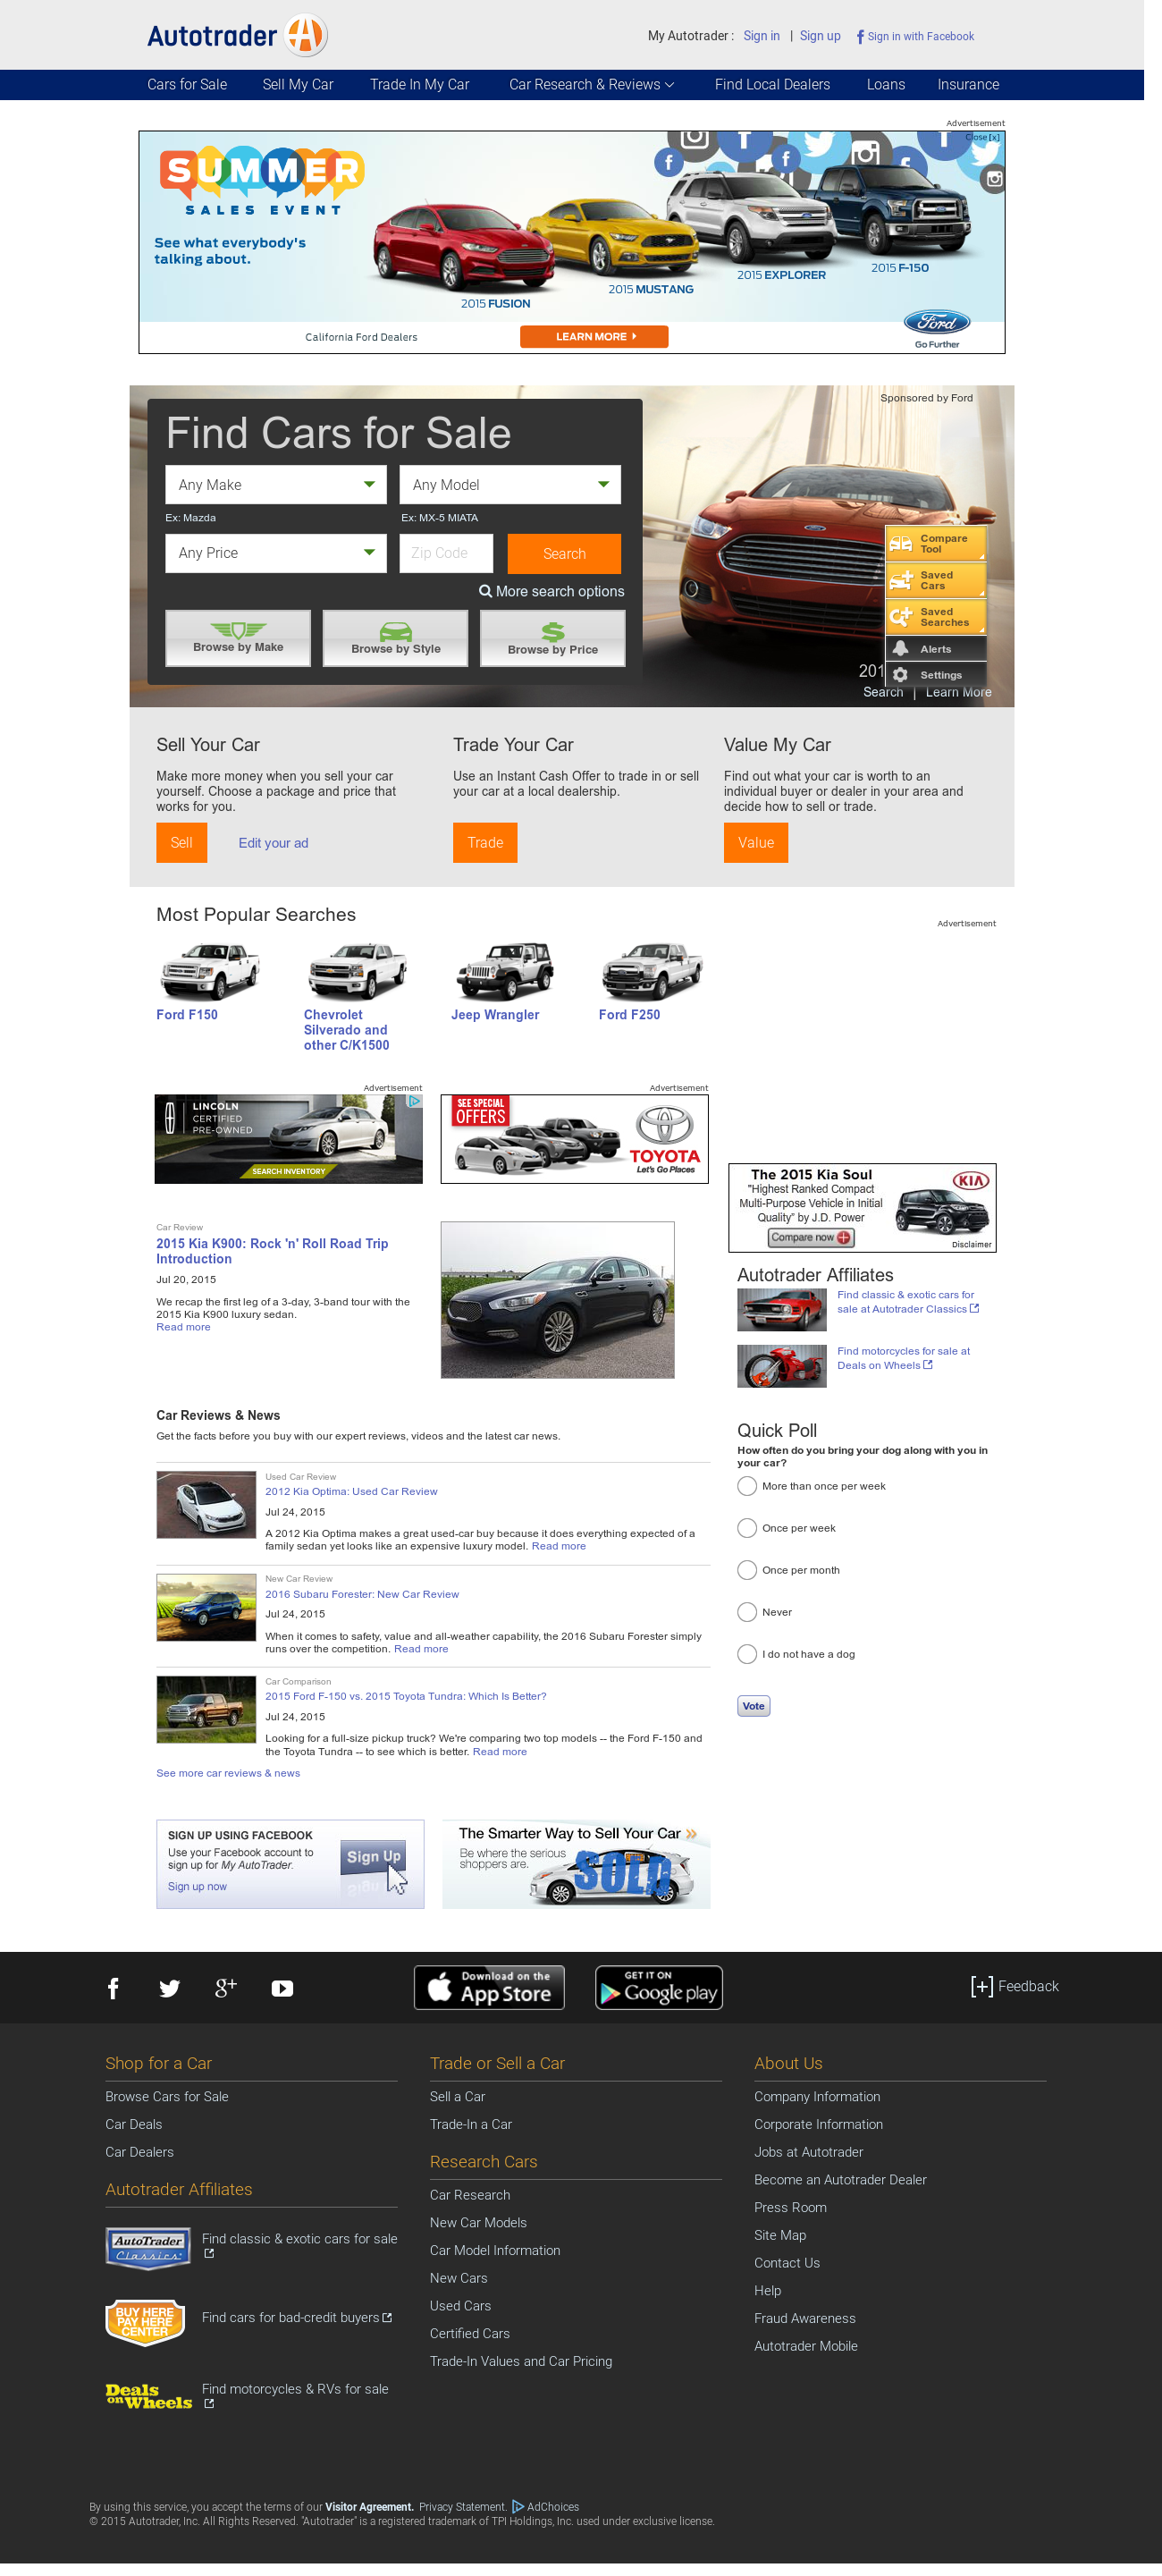 AutoTrader Competitors, Revenue and Employees - Owler Company Profile